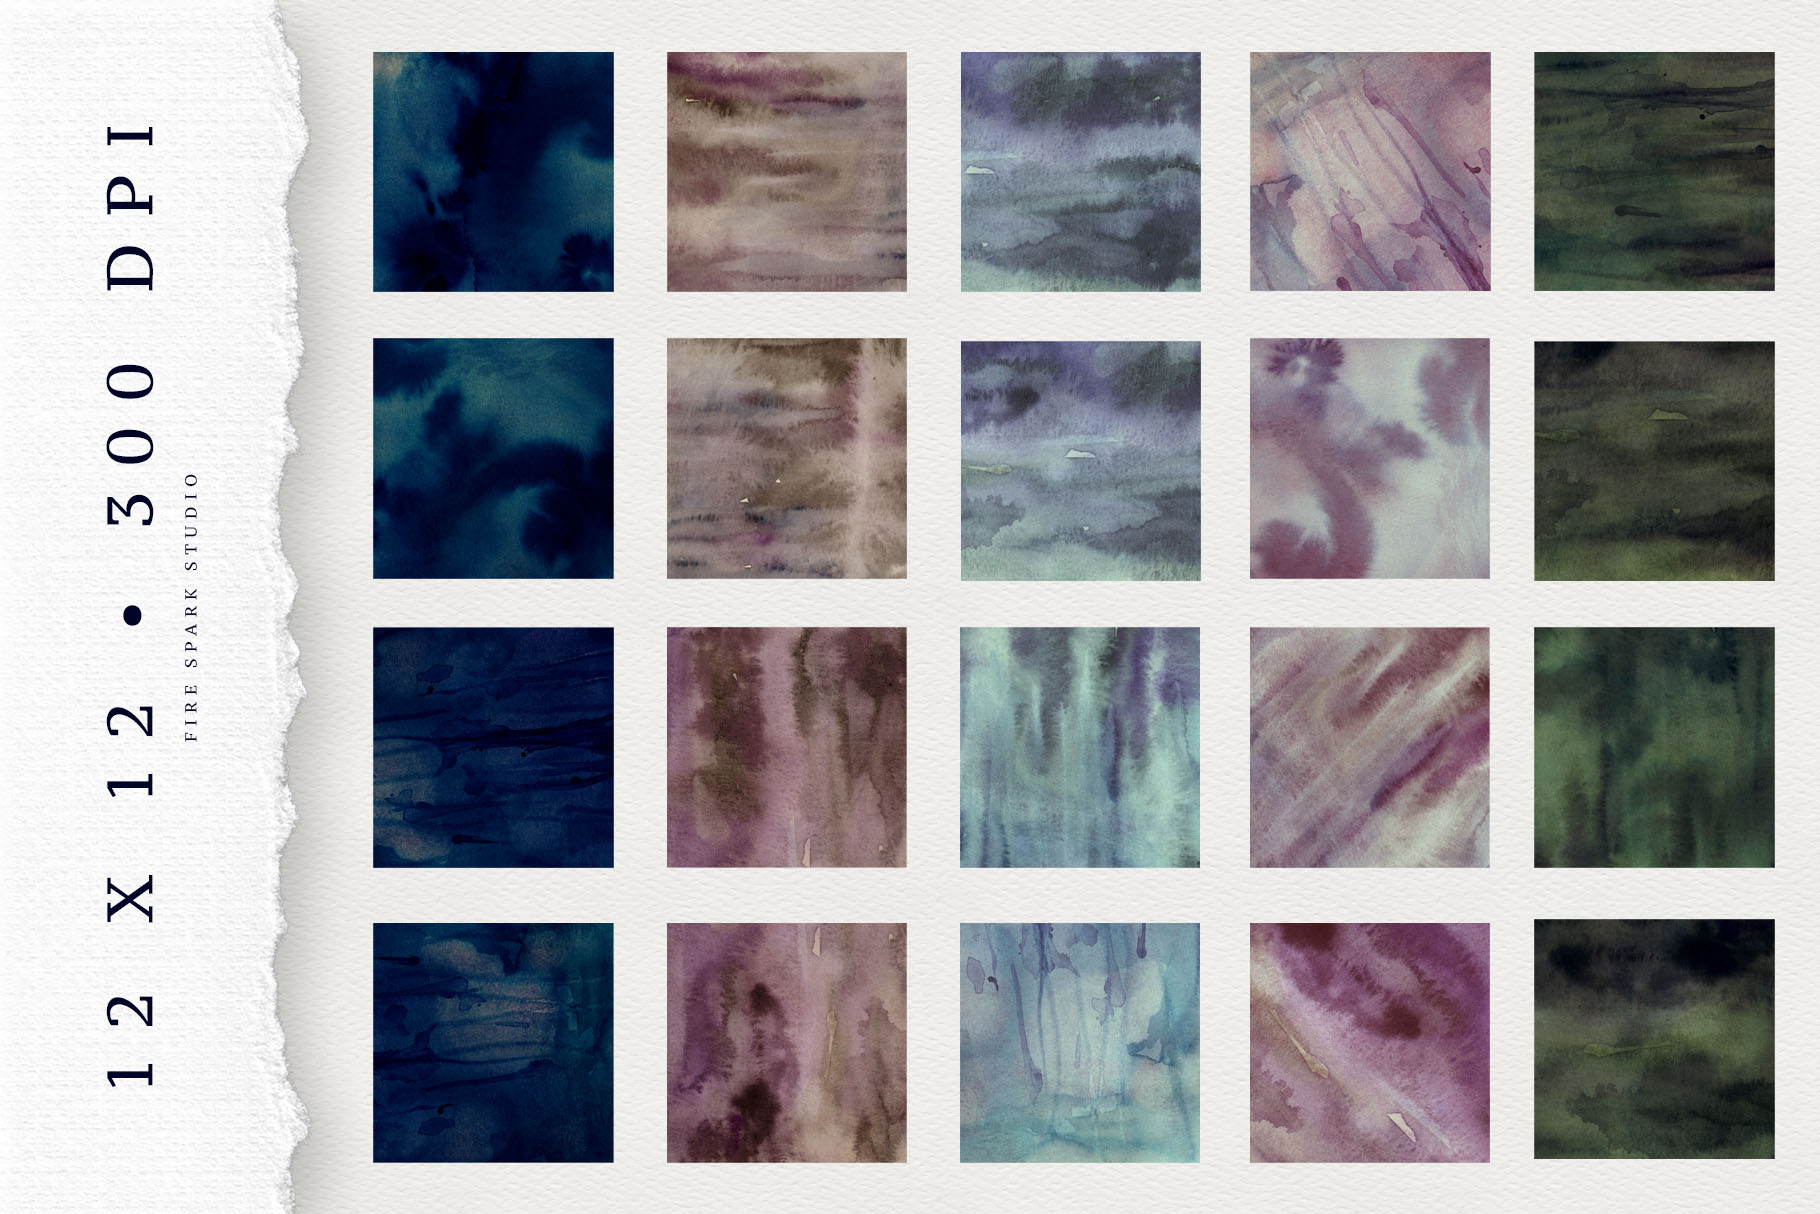 mood-texture-collection4.jpg